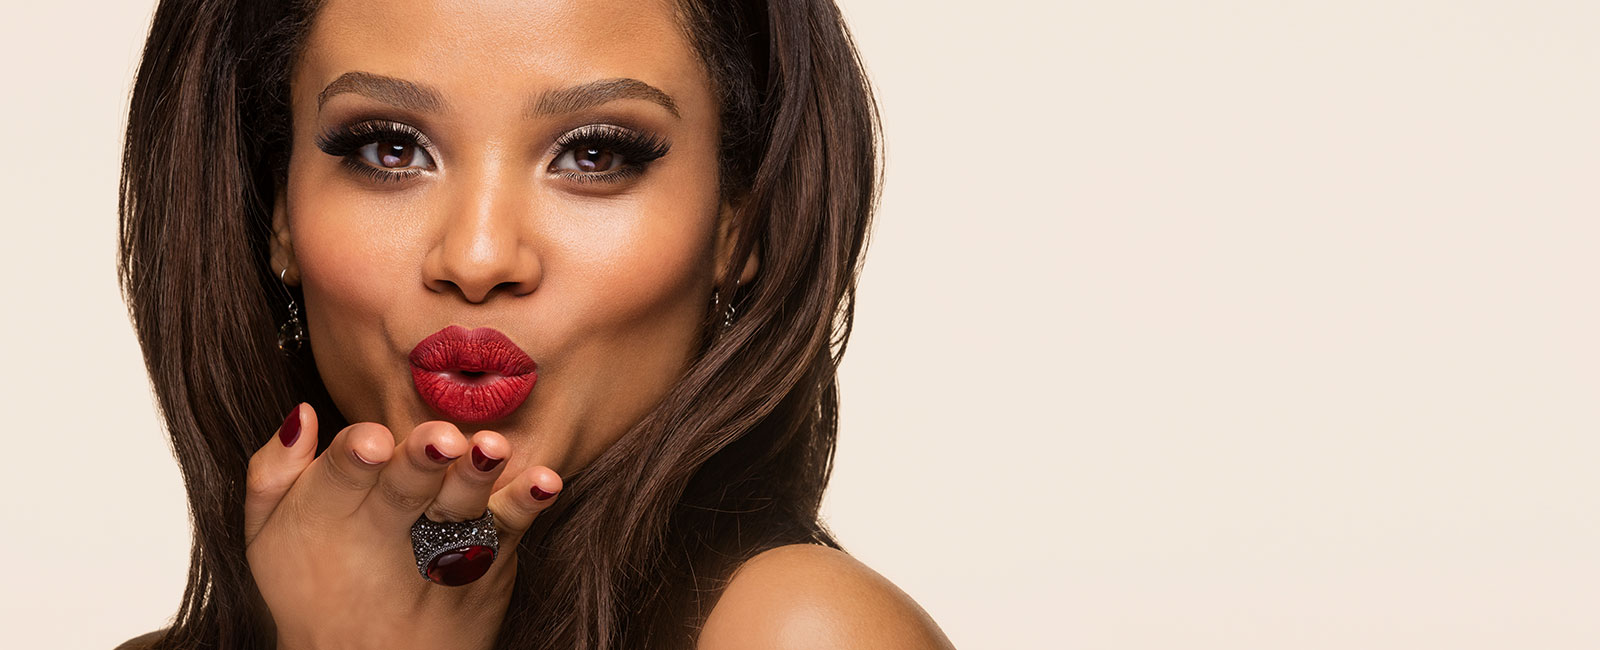 Woman blowing a kiss with red lipstick